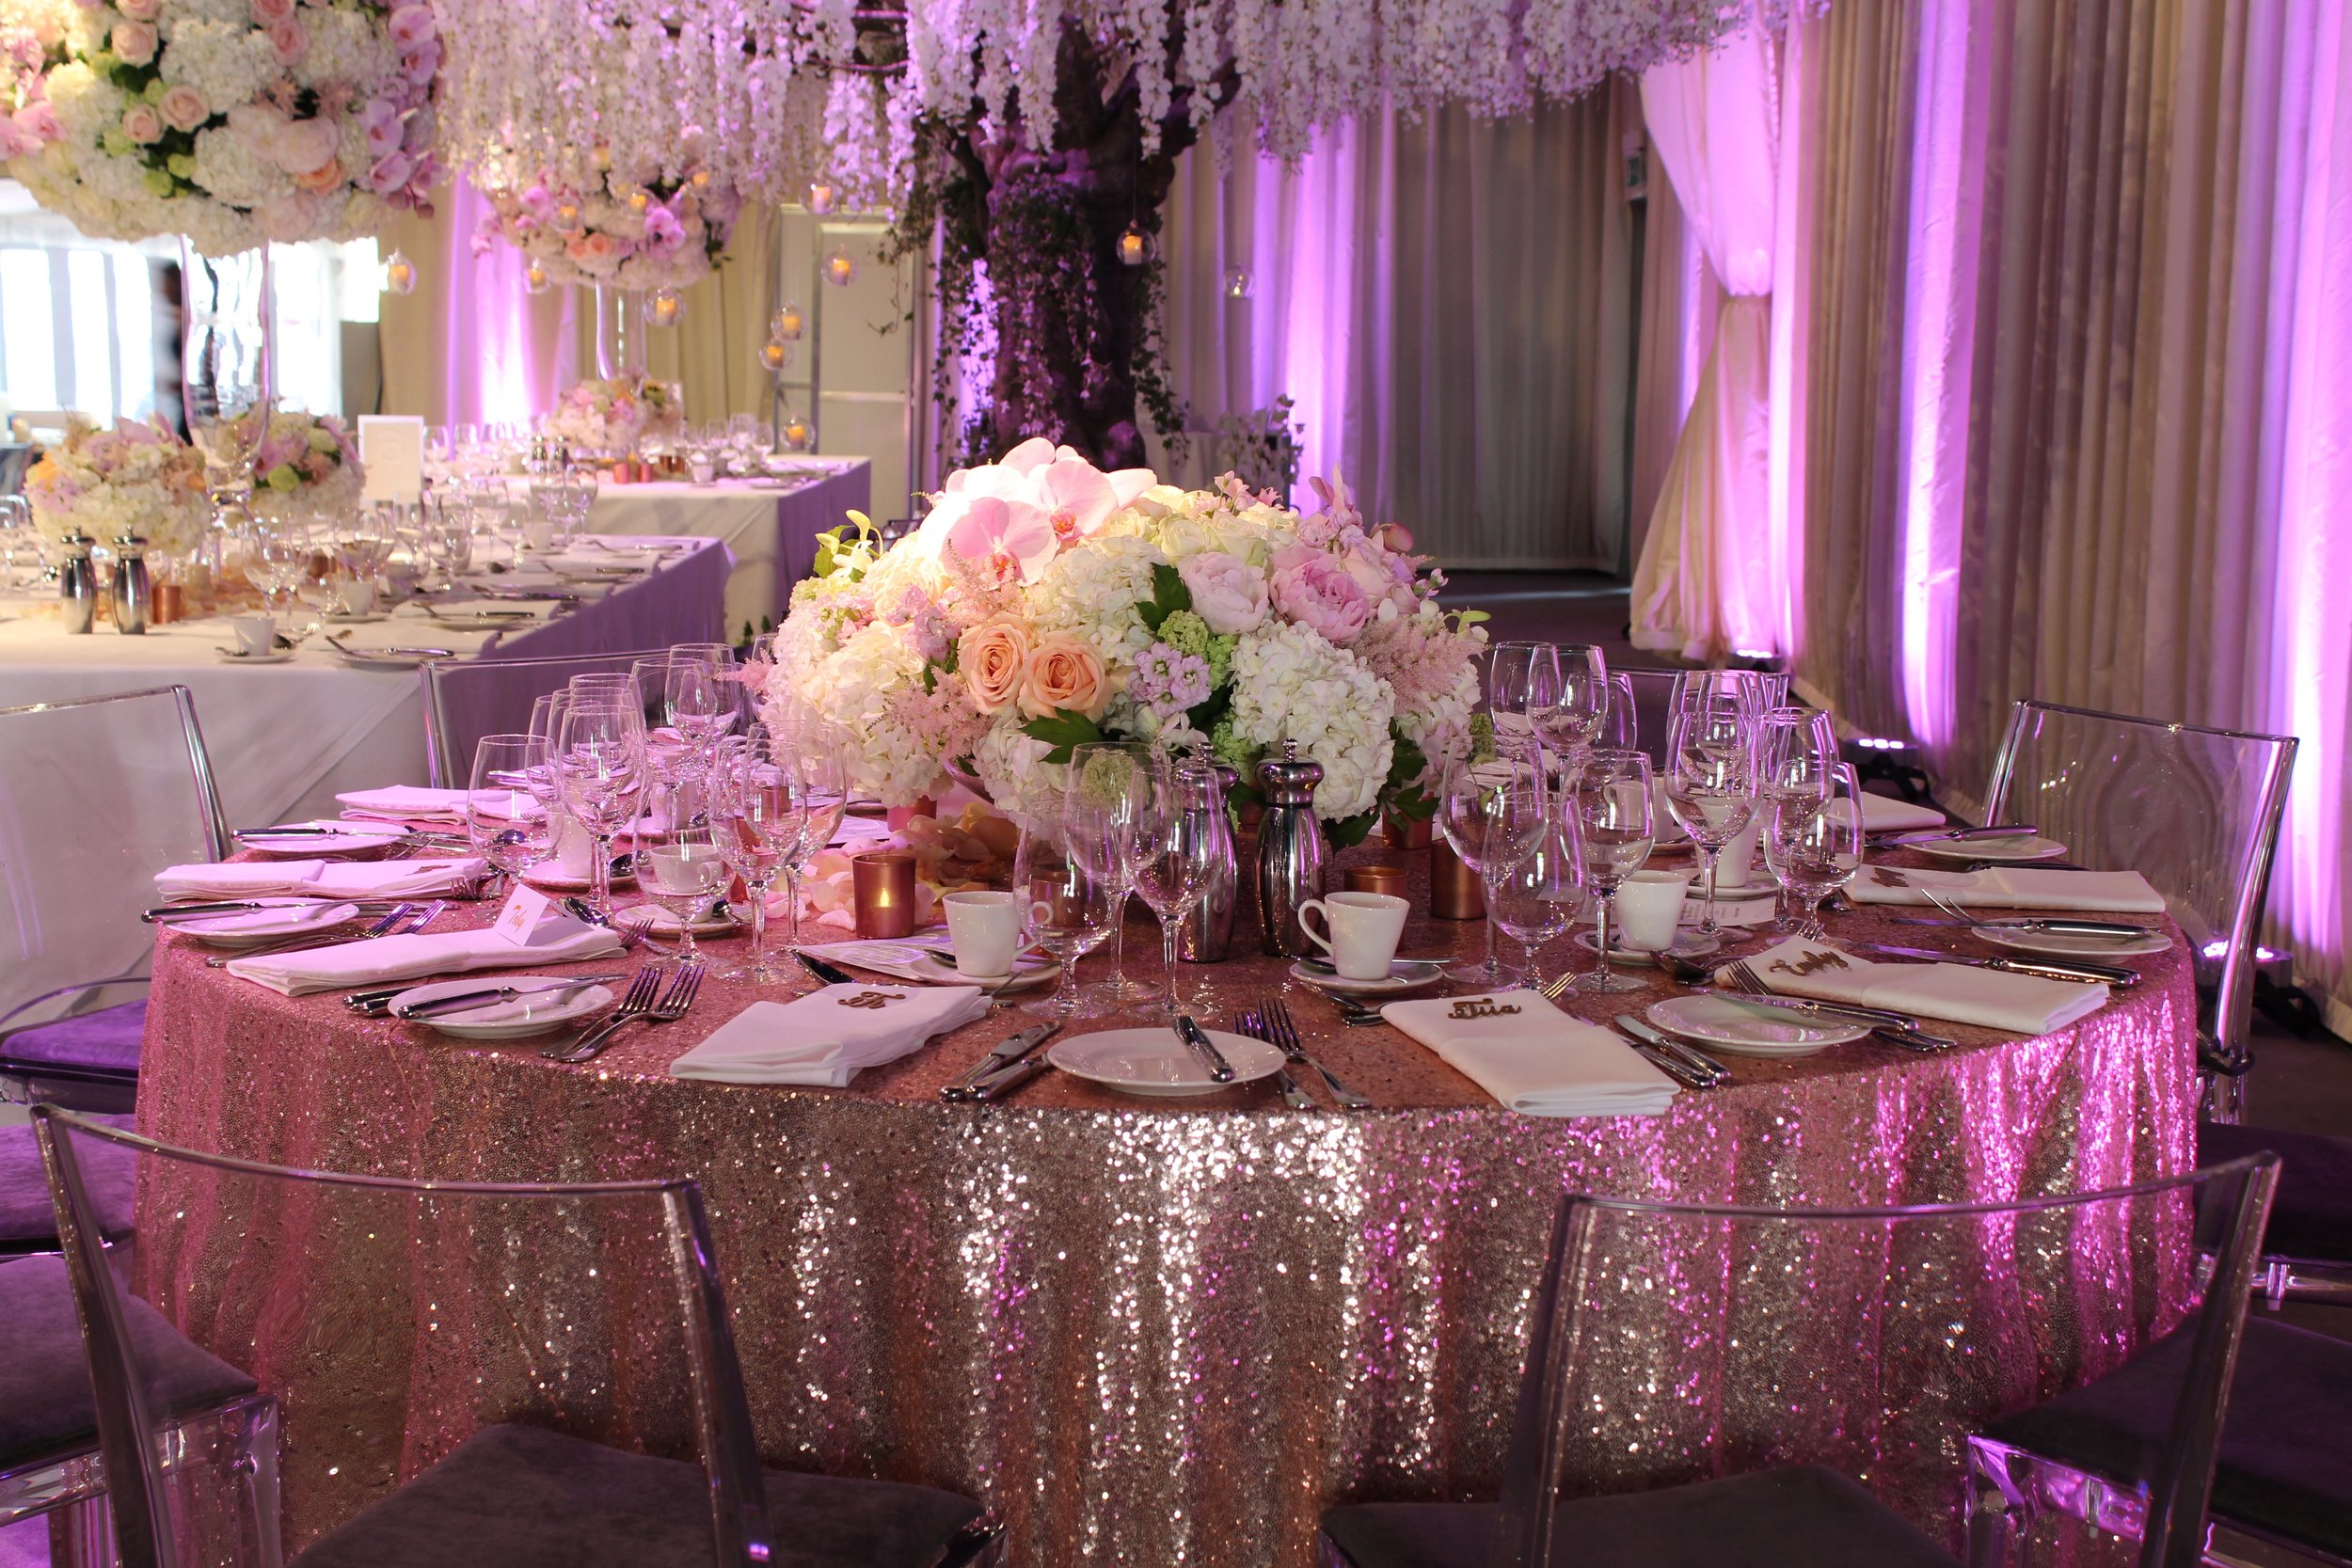 Rose Gold Sequin Wedding Tablecloth.jpg